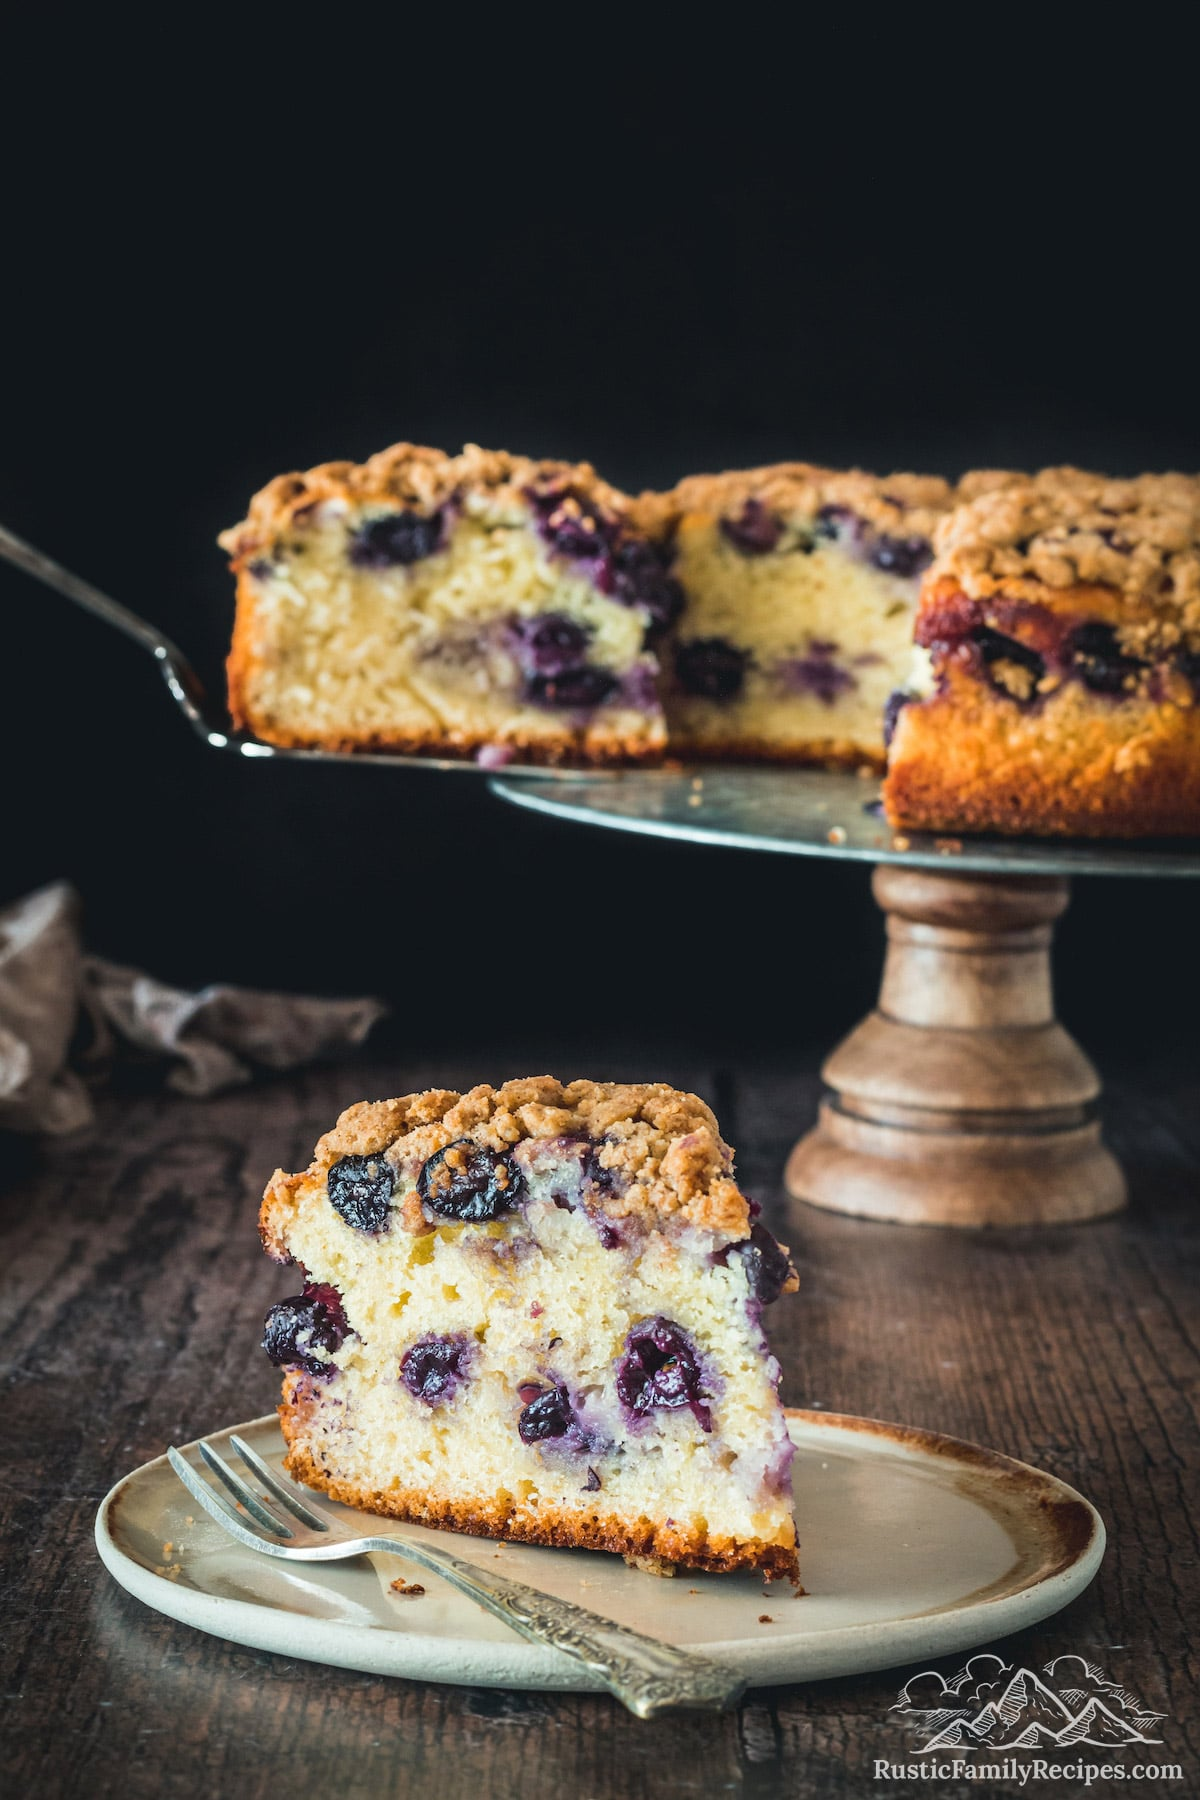 Slice of black currant cake in front of the entire cake on a stand